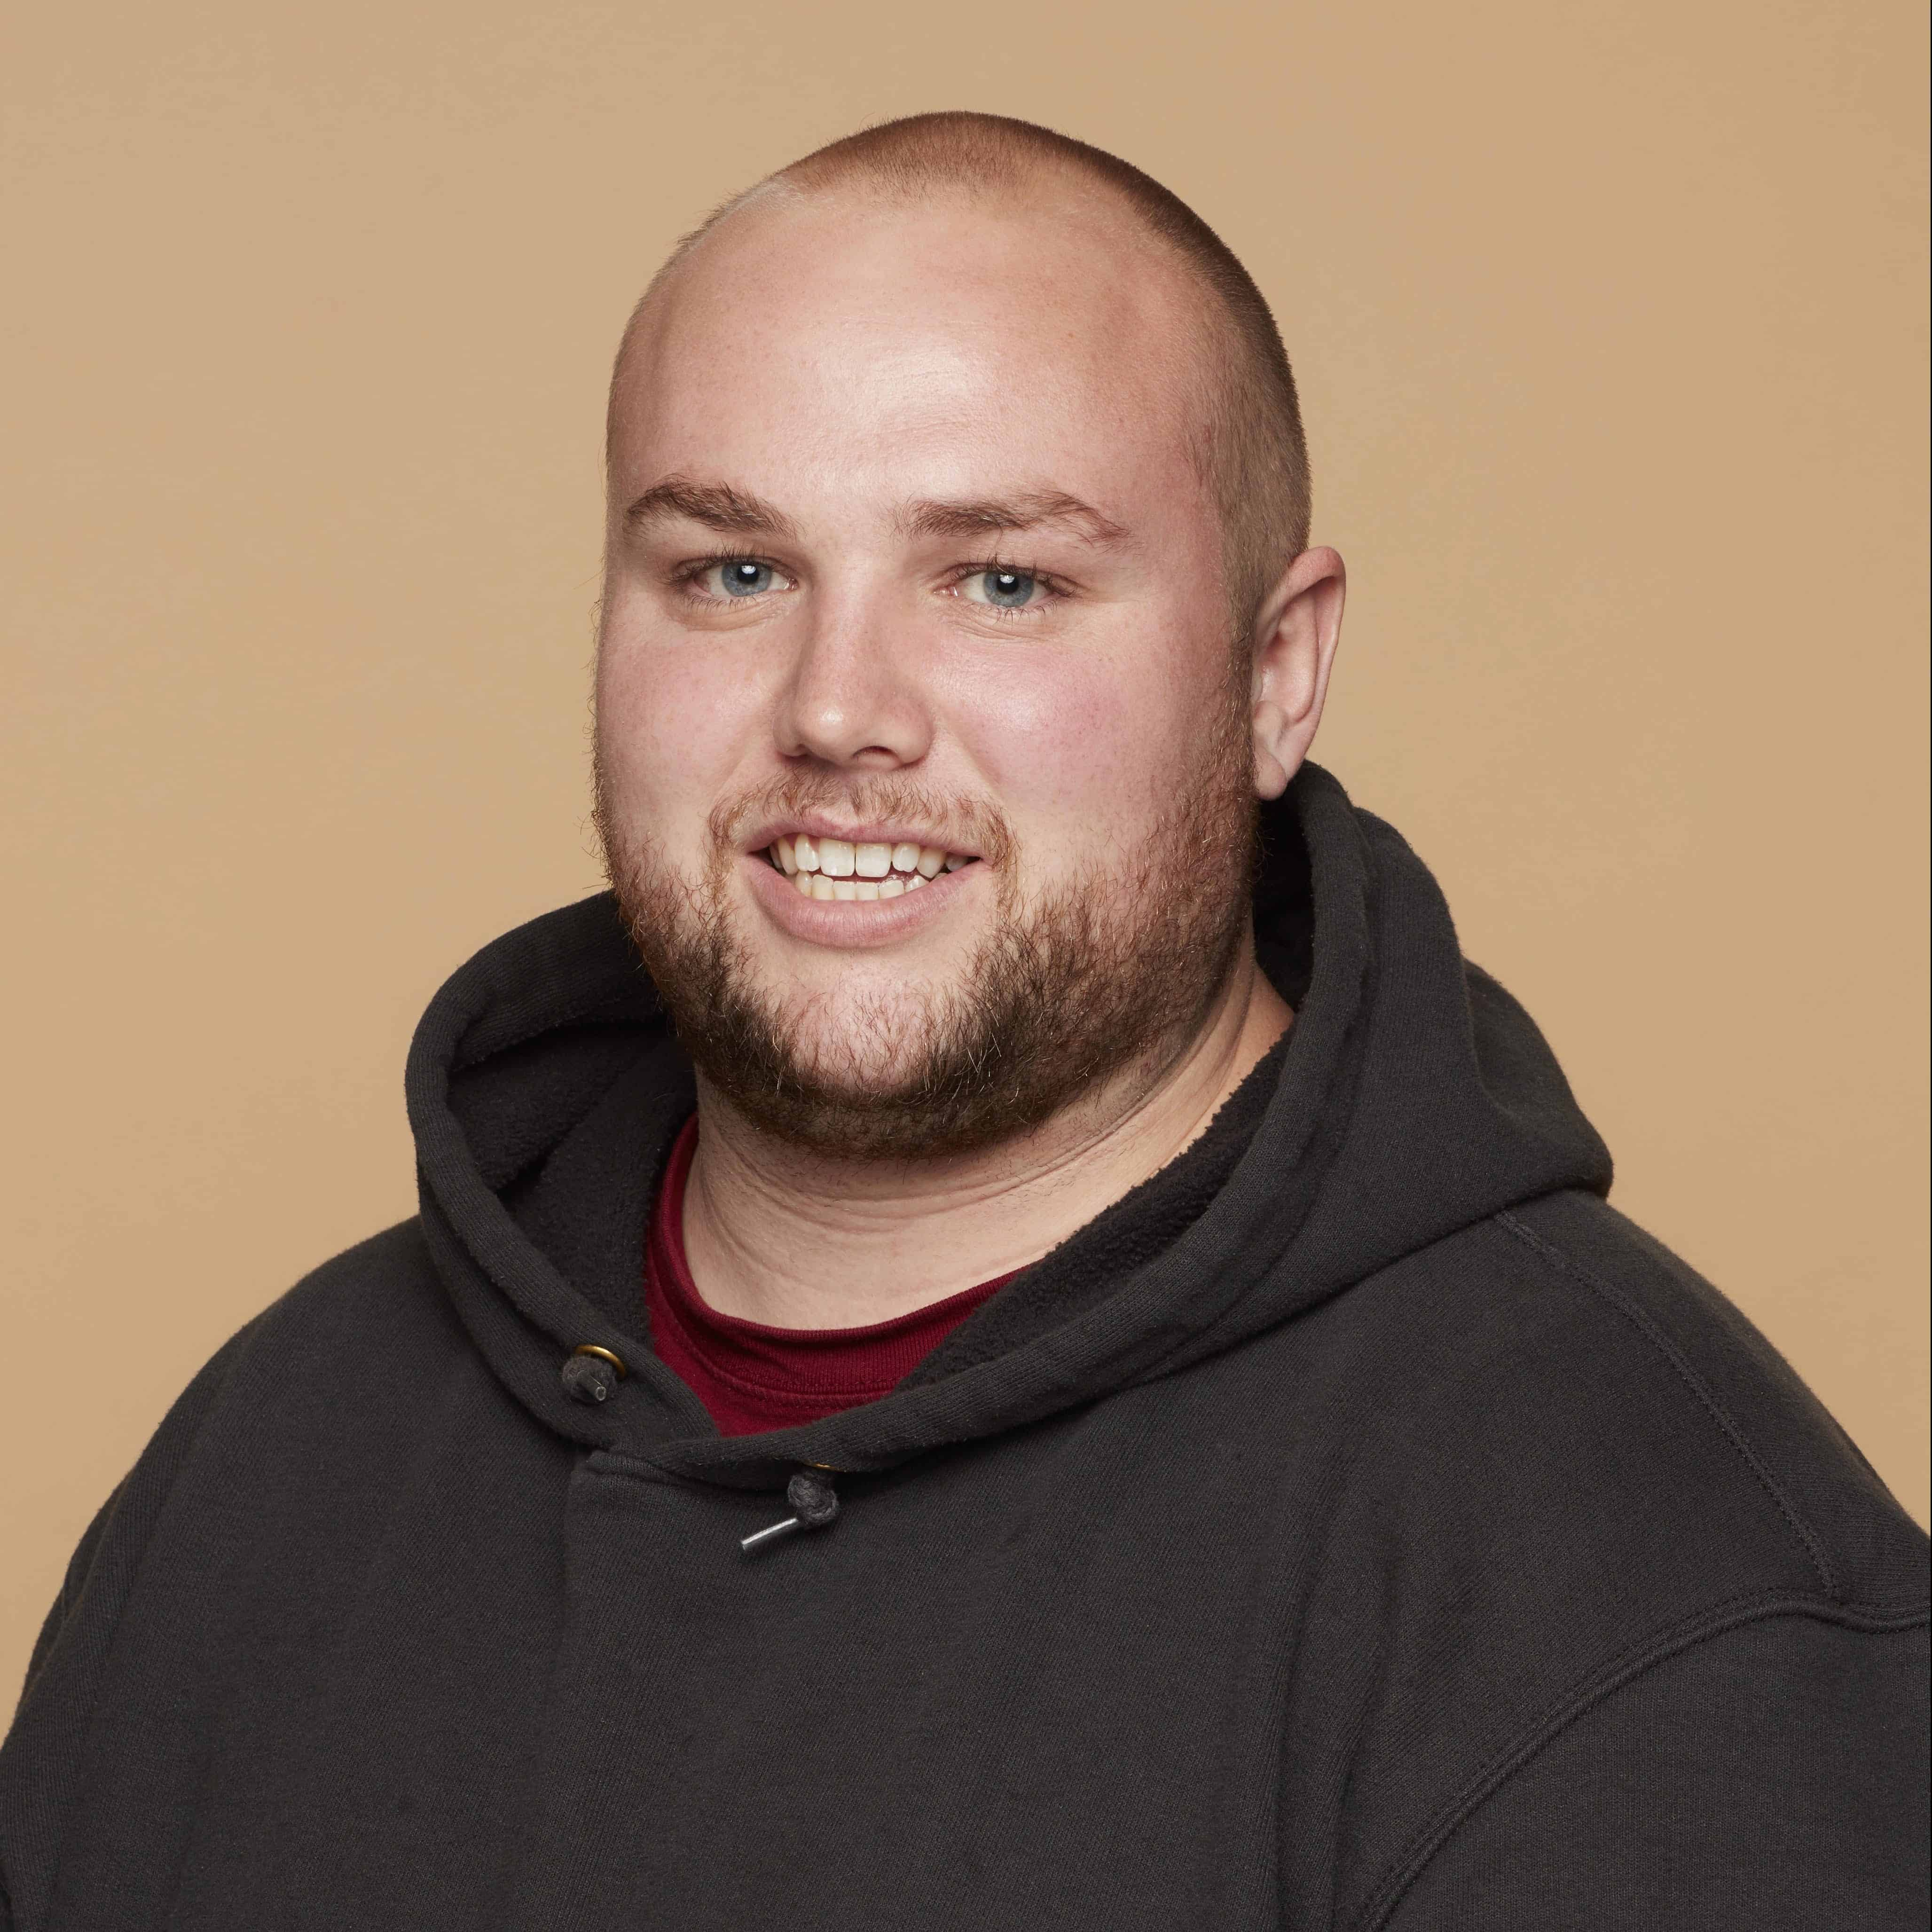 Charlie Grinnell smiles at the camera before an orange background wearing a black hoodie.